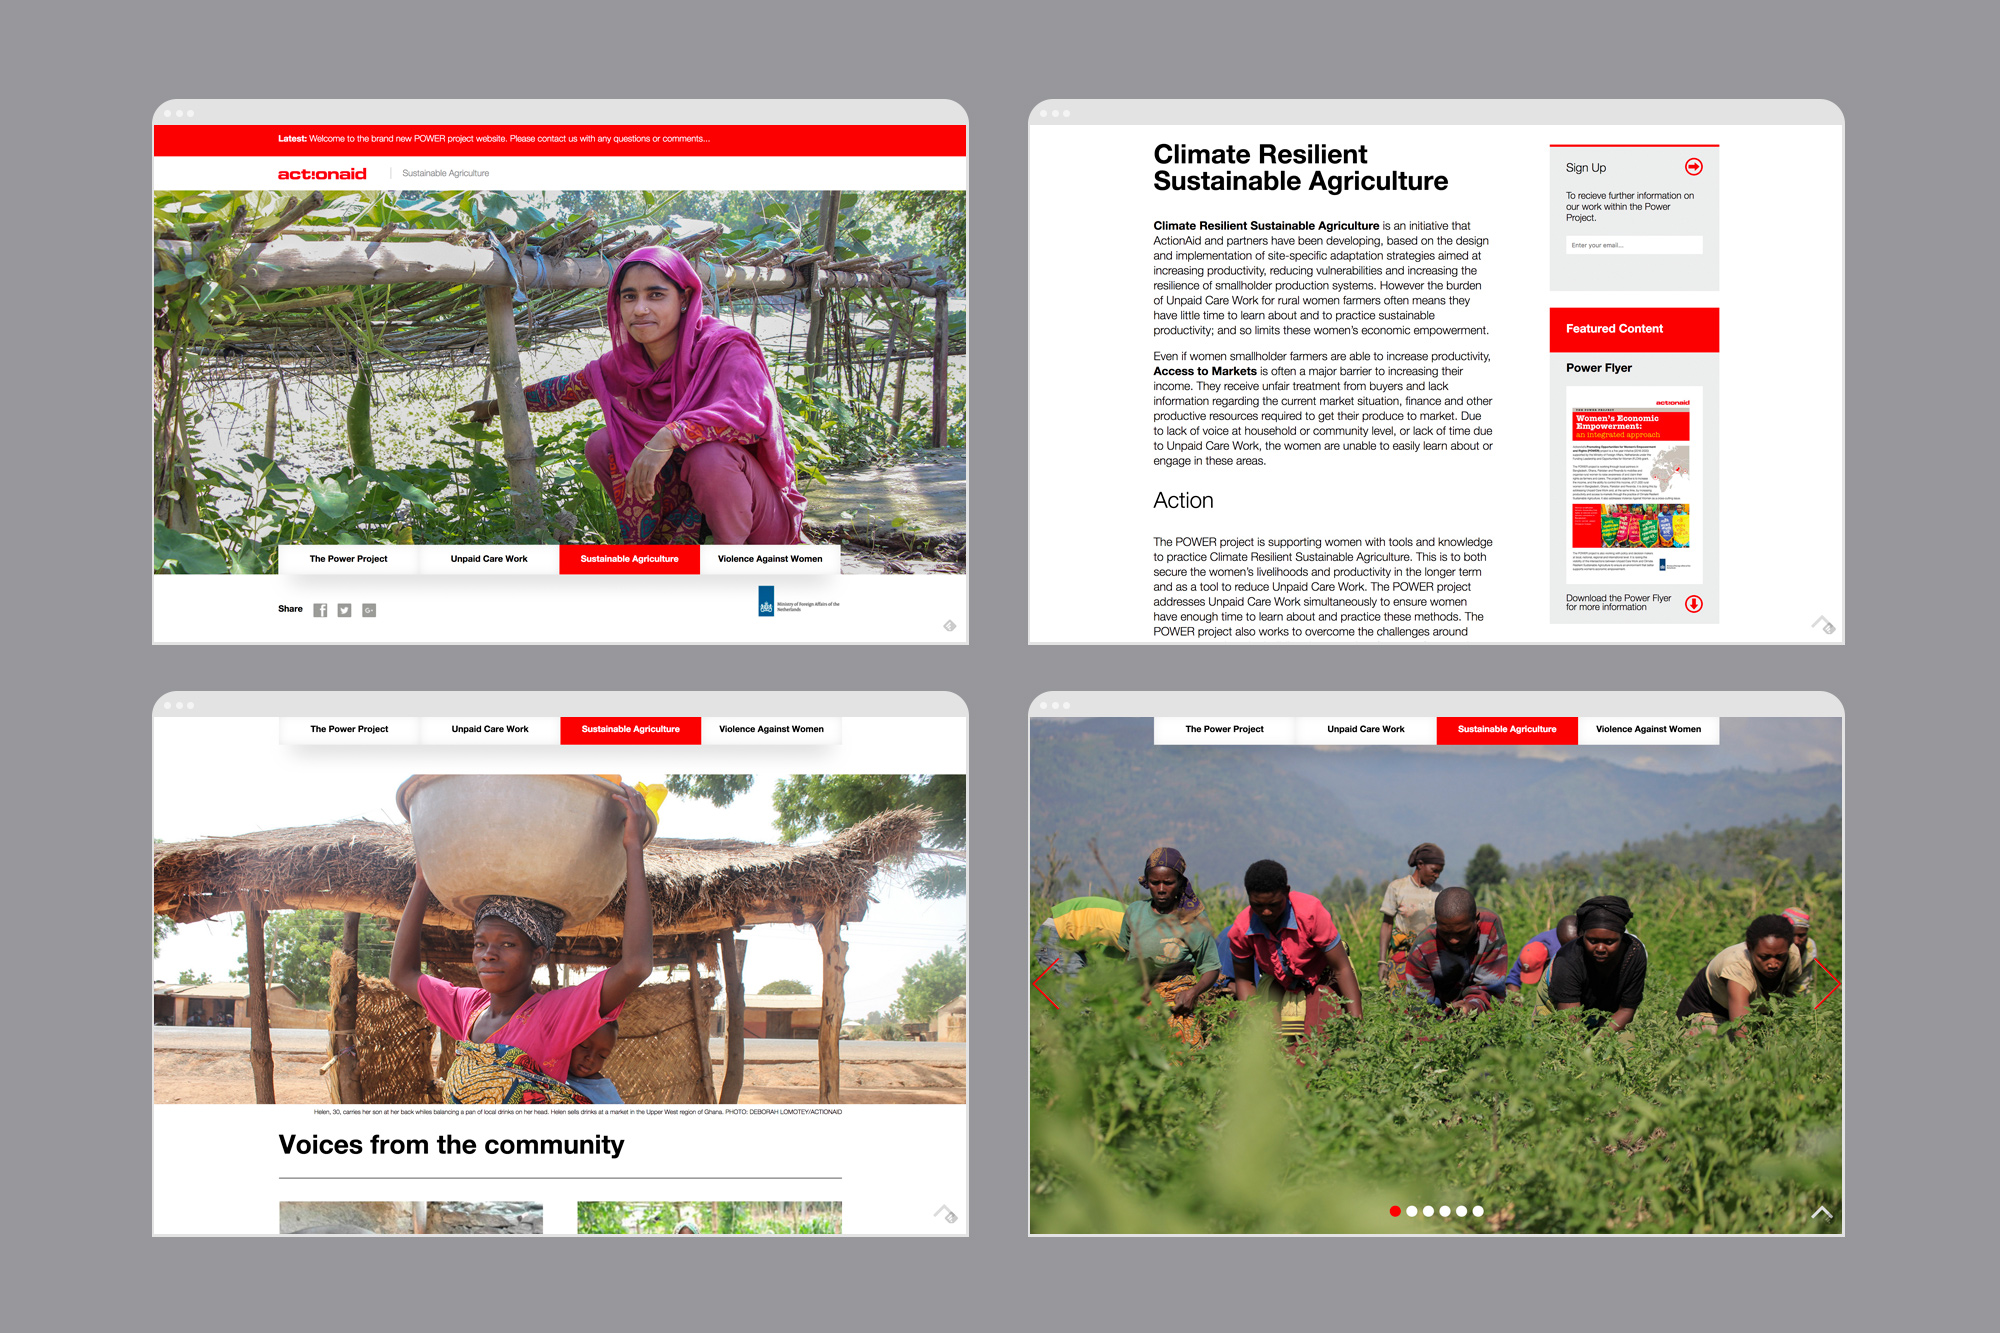 gpj-actionaid-power-project-v7